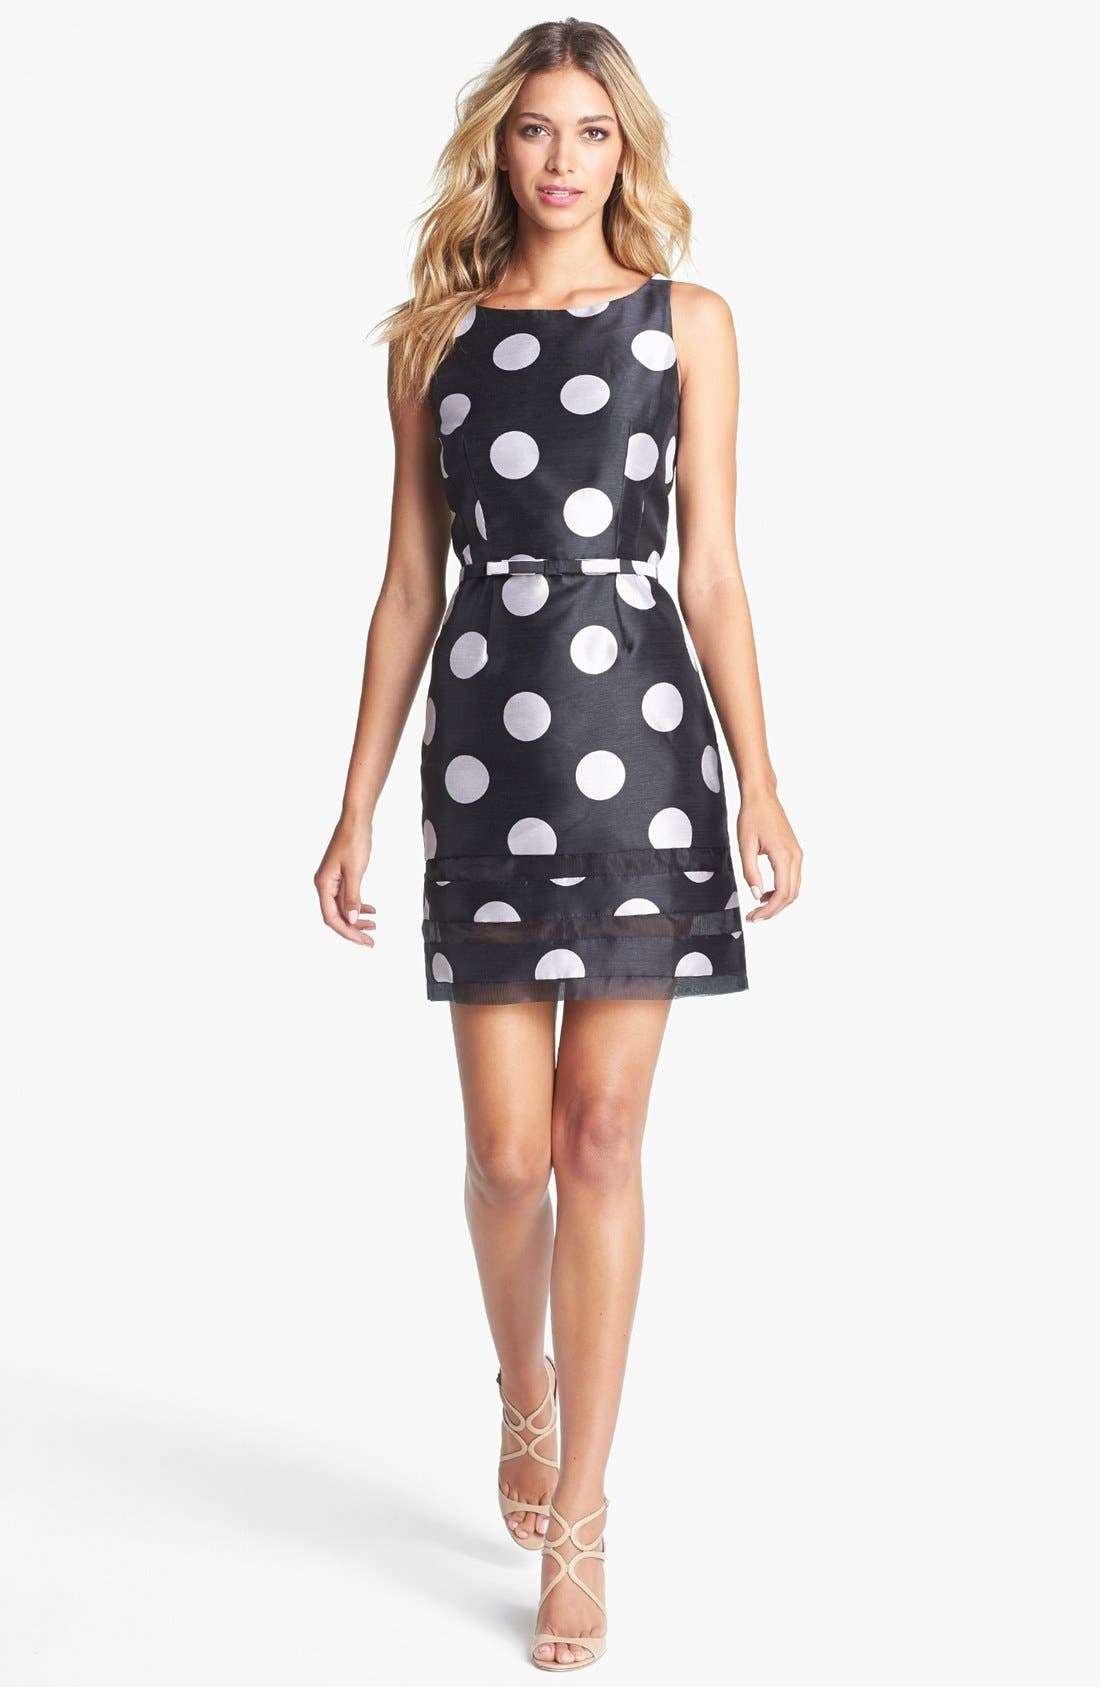 Main Image - Taylor Dresses Polka Dot Sheath Dress